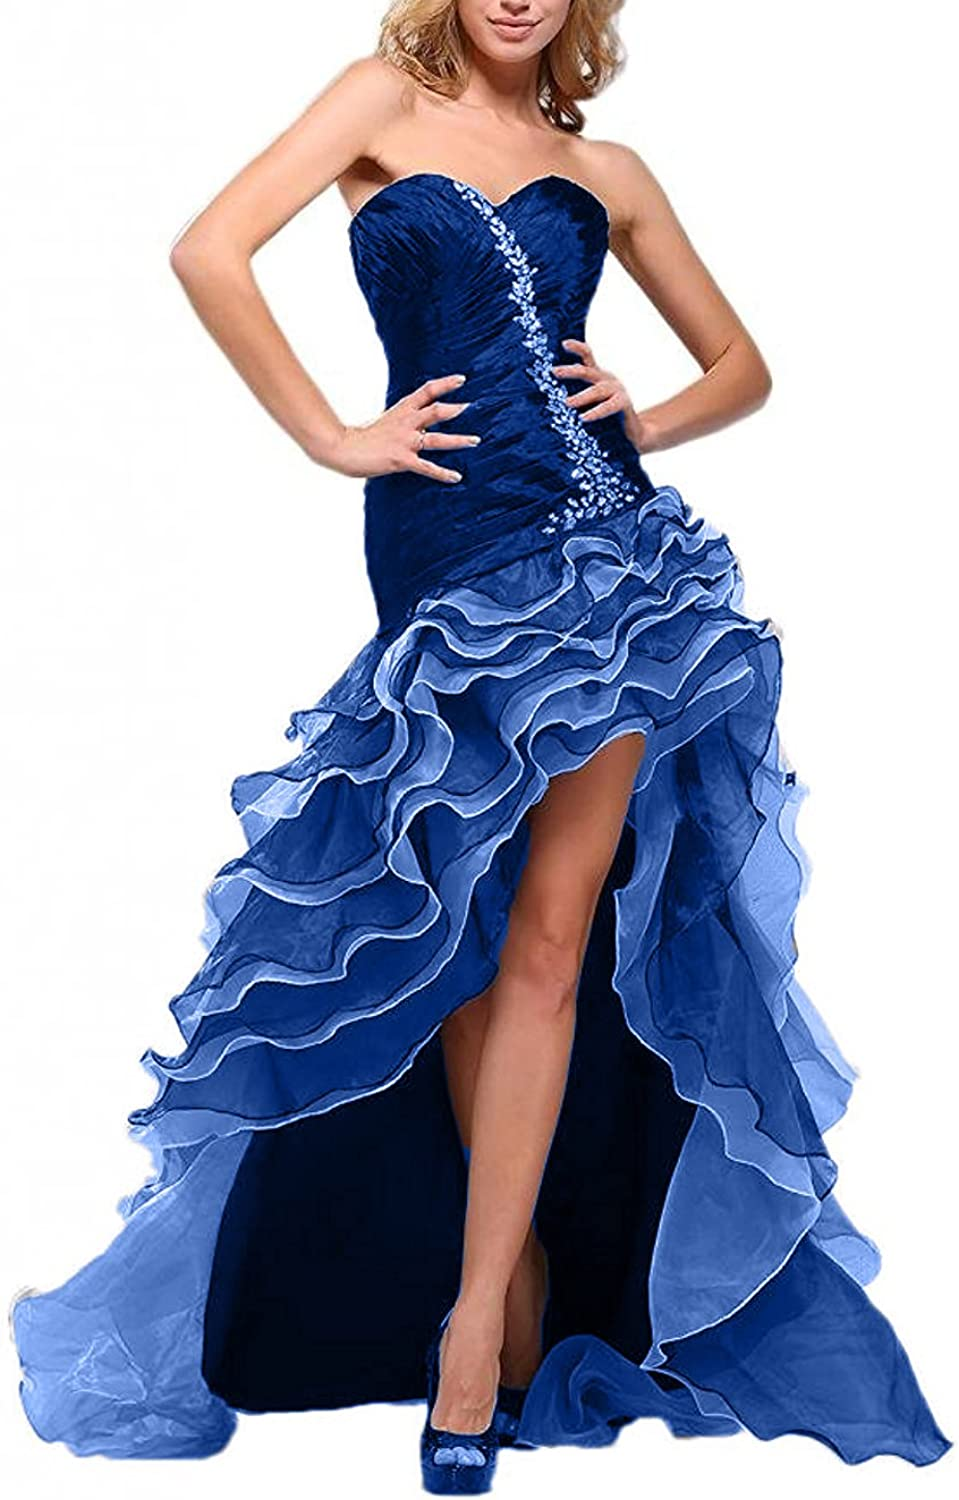 Beilite Sweetheart Crystals Prom Dress HiLo Organza Party Gown